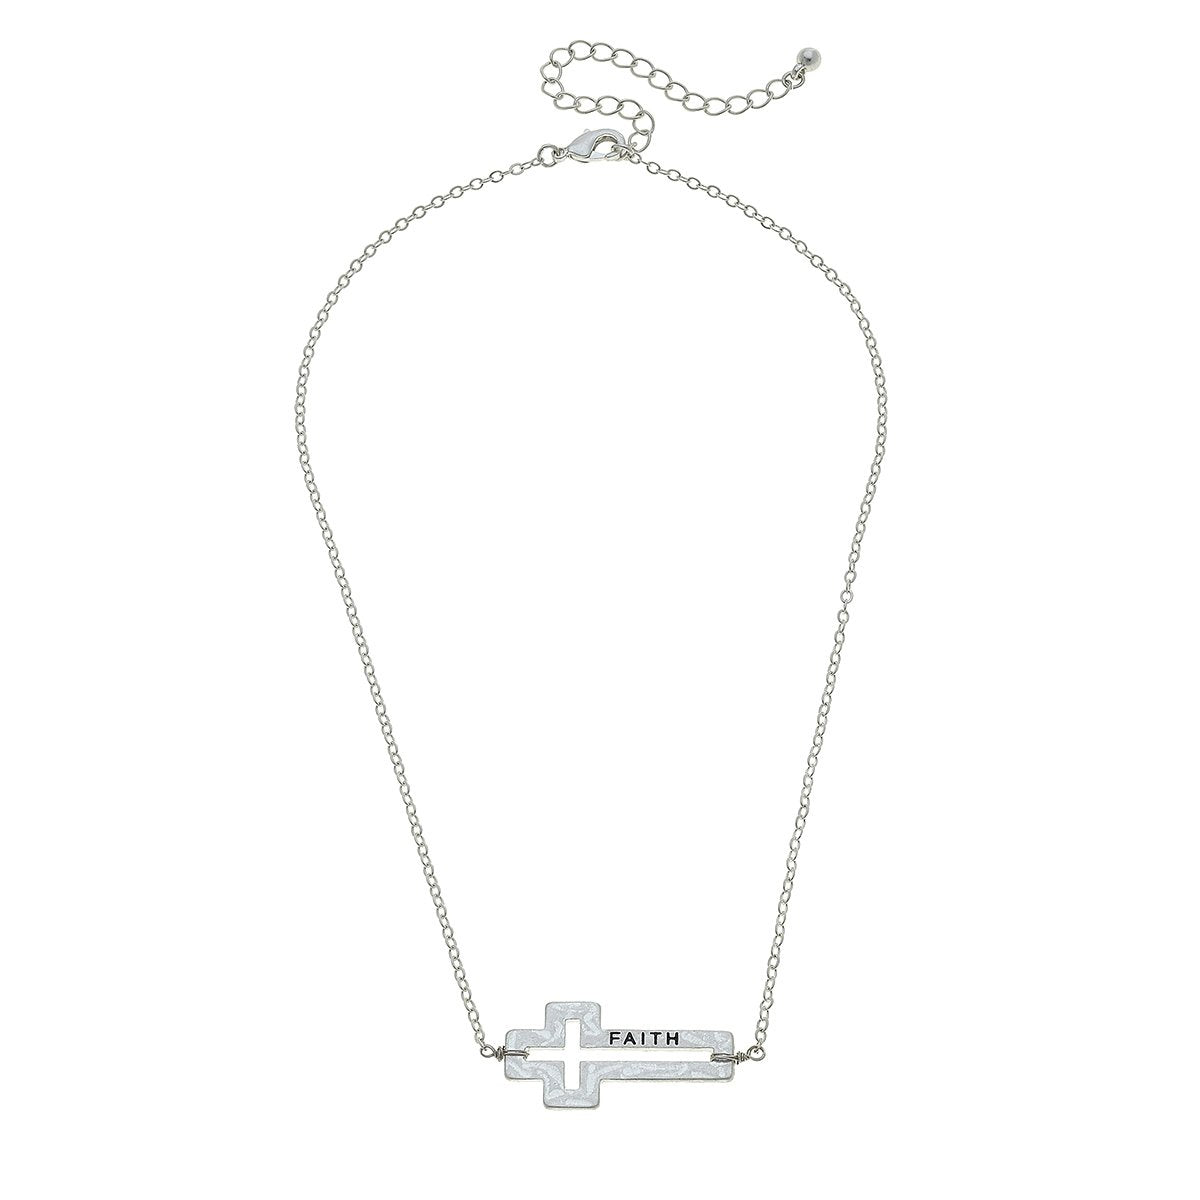 Faith Sideways Cross Necklace in Worn Silver